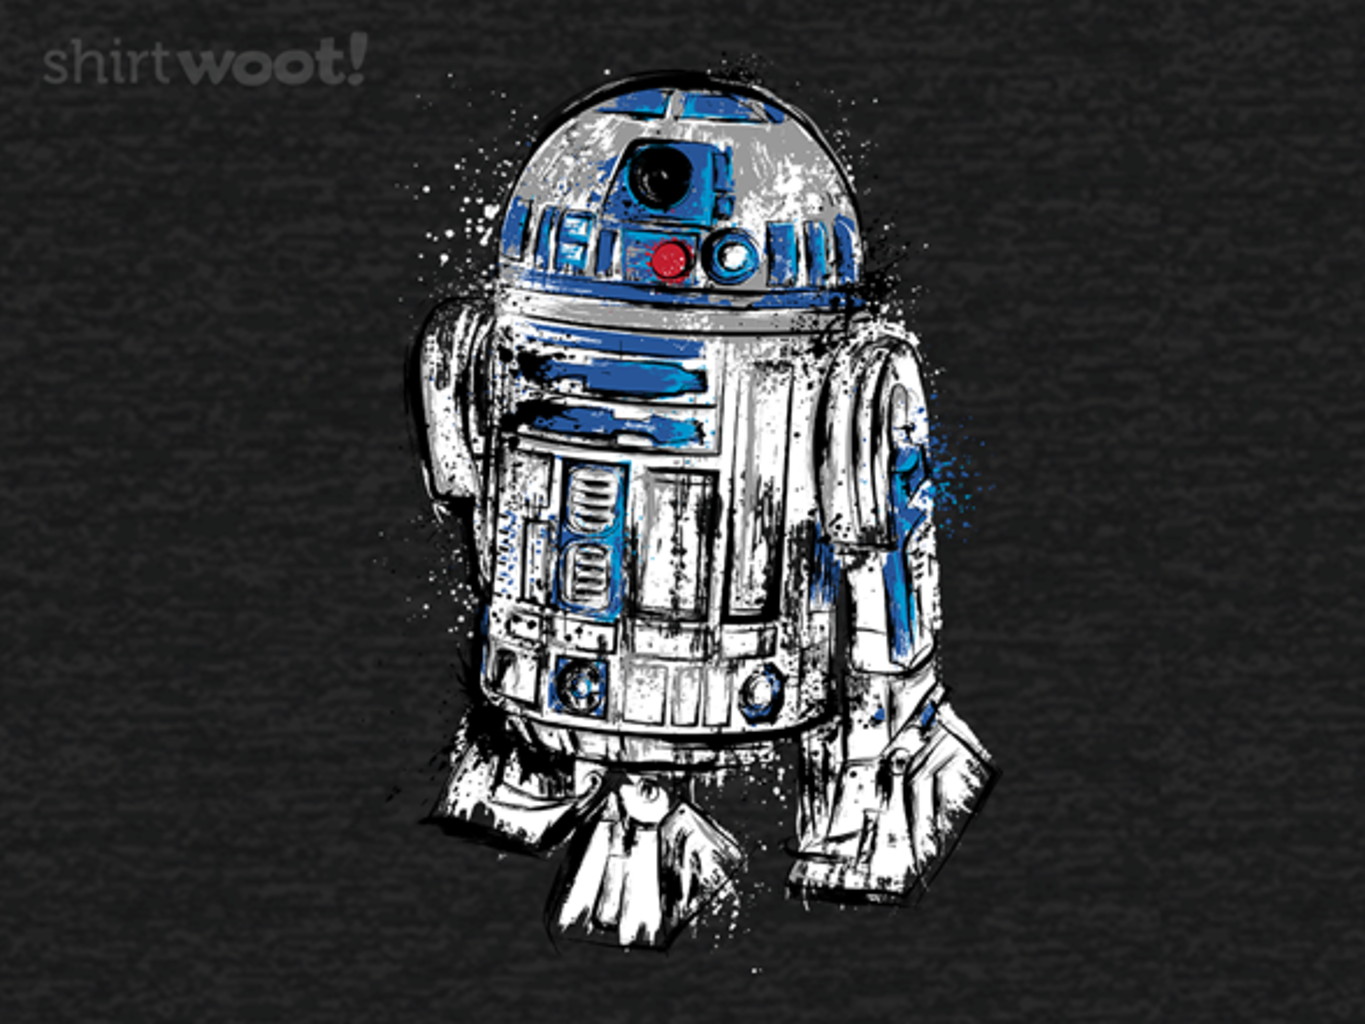 Woot!: More than a Droid